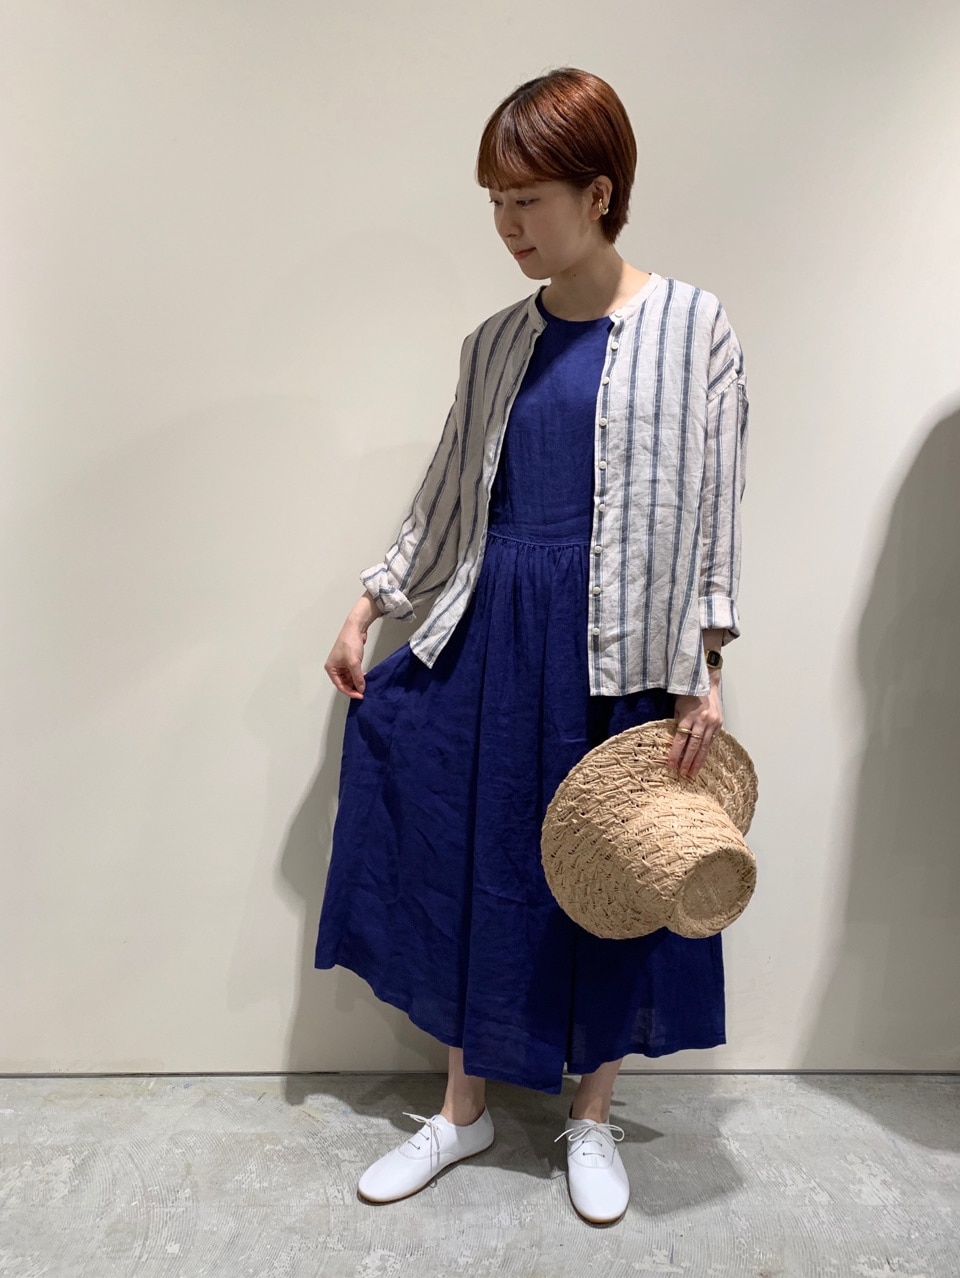 AMB SHOP CHILD WOMAN CHILD WOMAN , PAR ICI ルミネ横浜 身長:158cm 2020.06.11